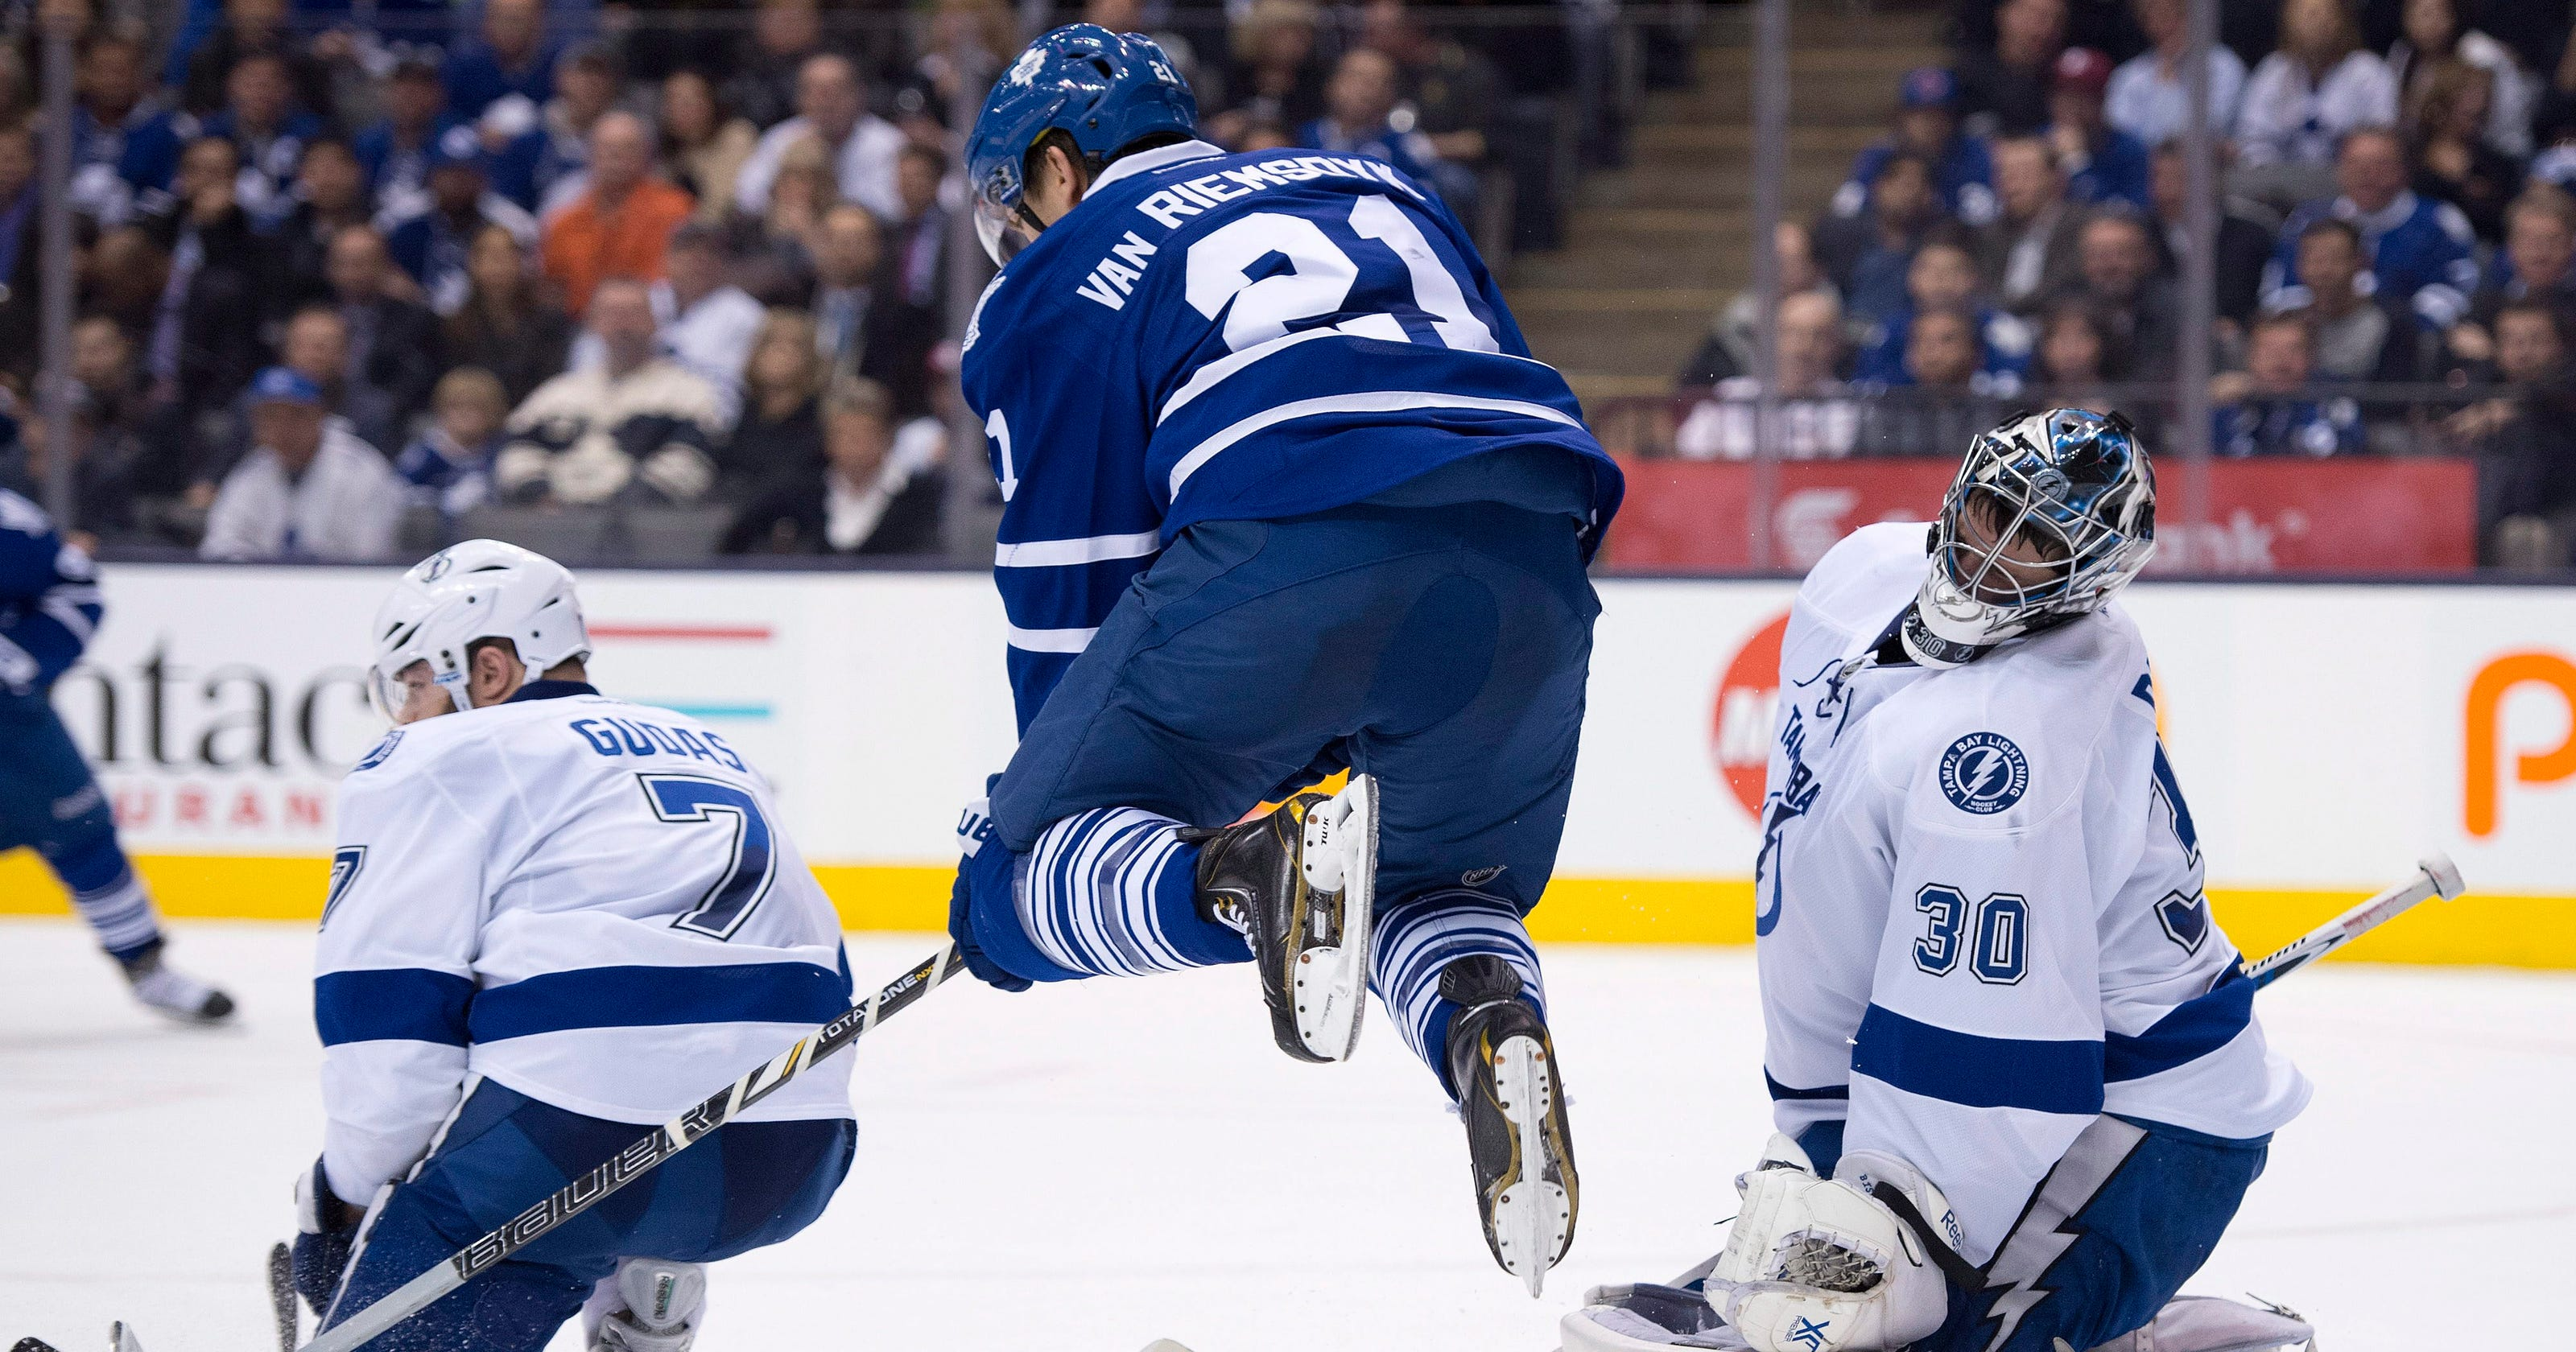 wholesale dealer 7f6f9 ce968 Stamkos' hat trick leads Lightning past Leafs